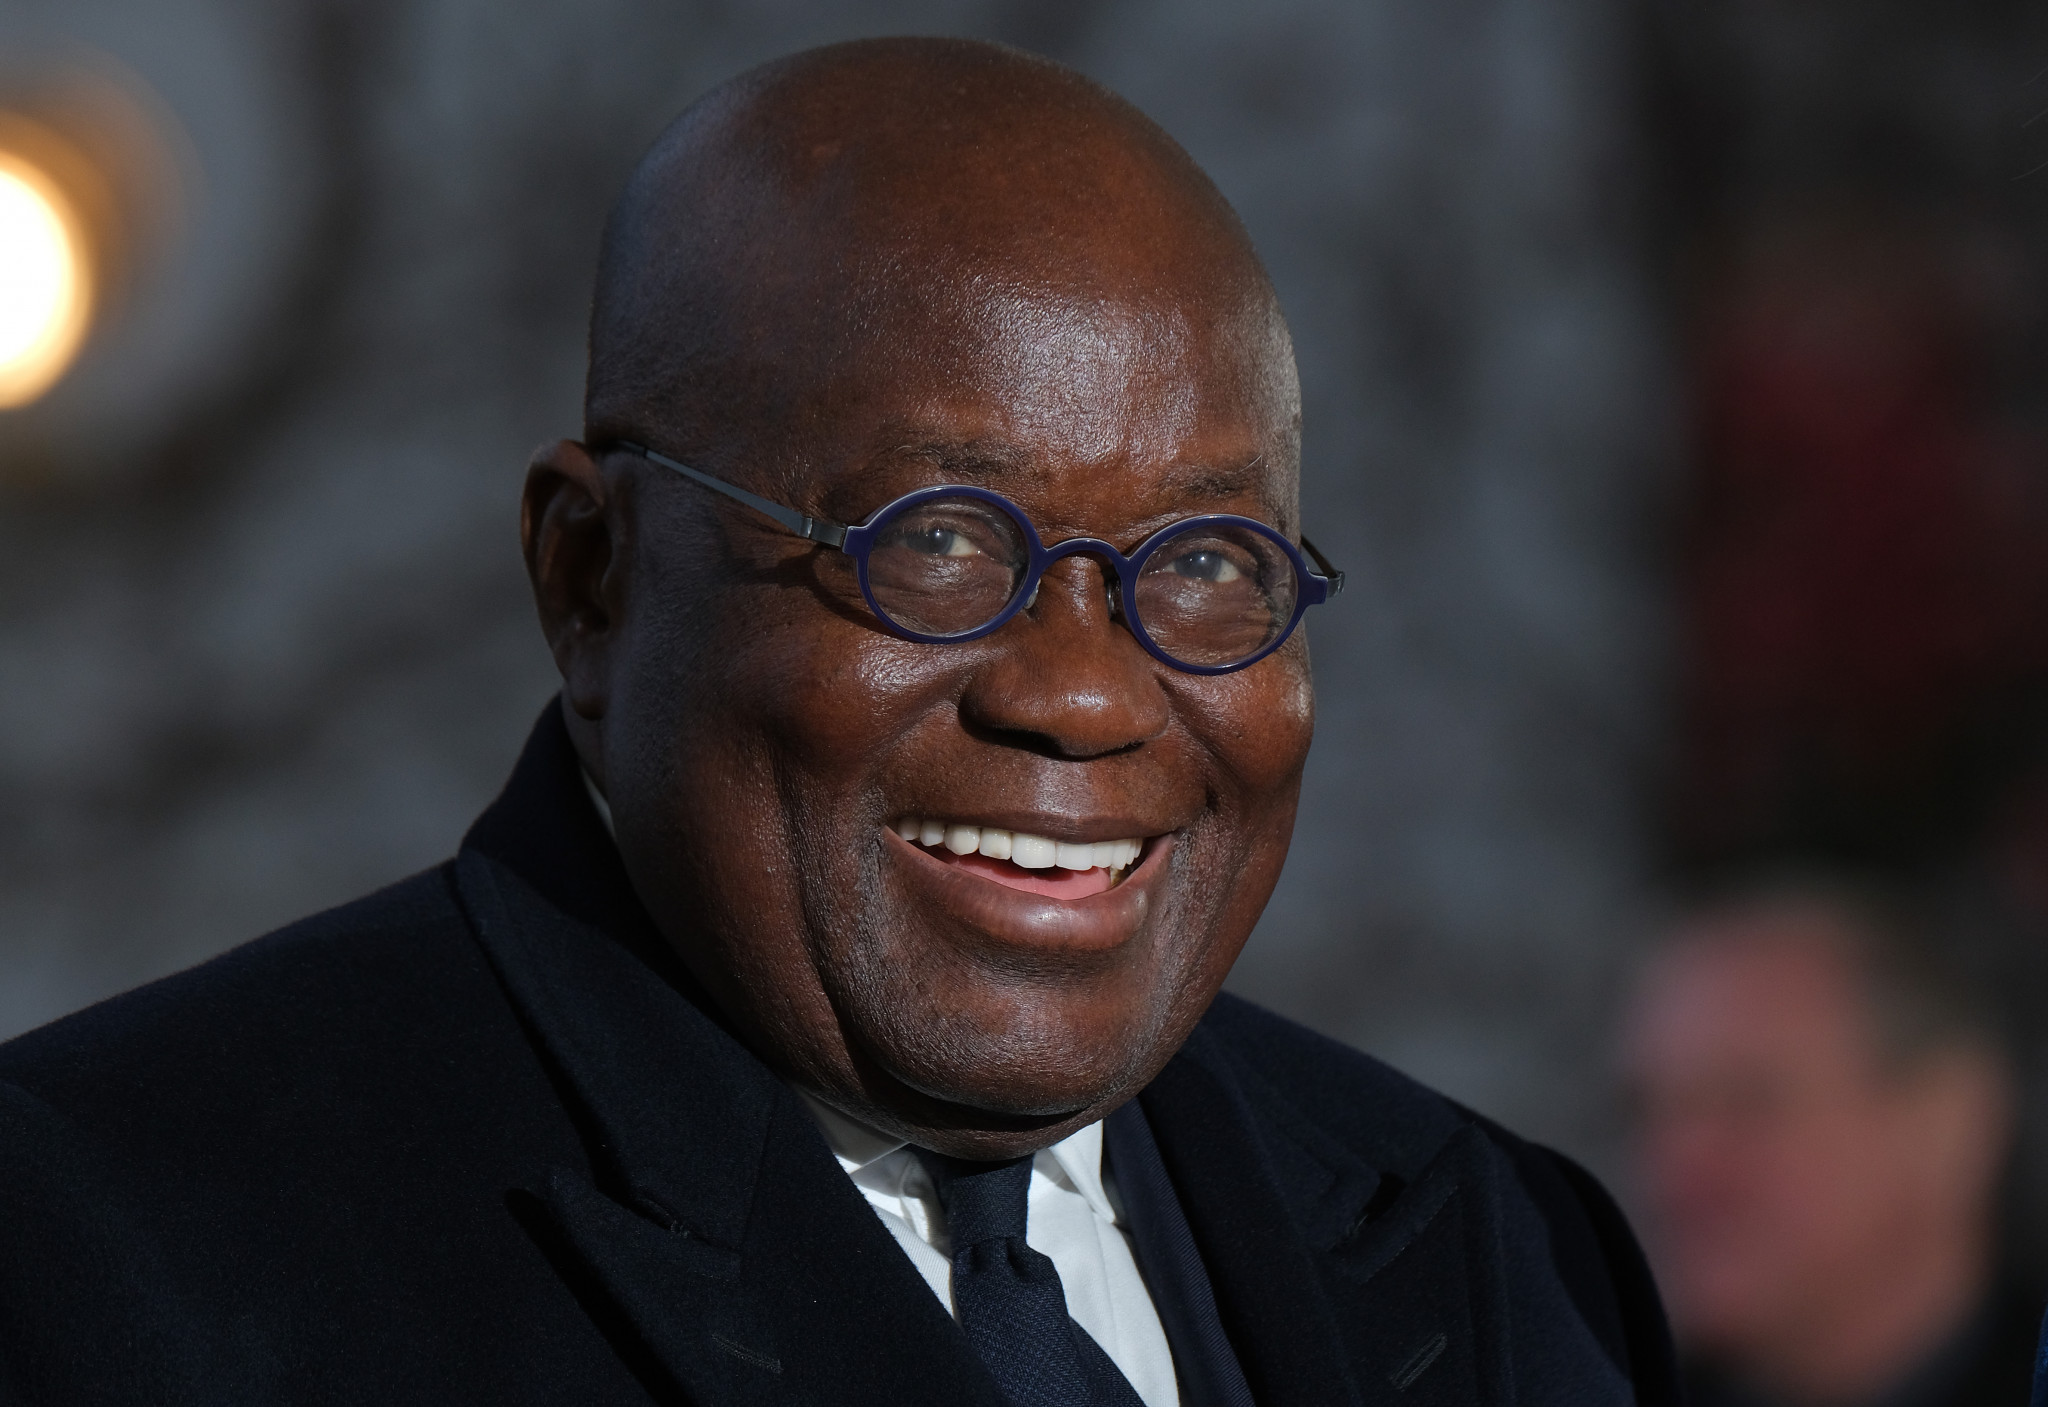 """Ghana President vows to """"make Ghana and Africa proud"""" with 2023 African Games hosting"""